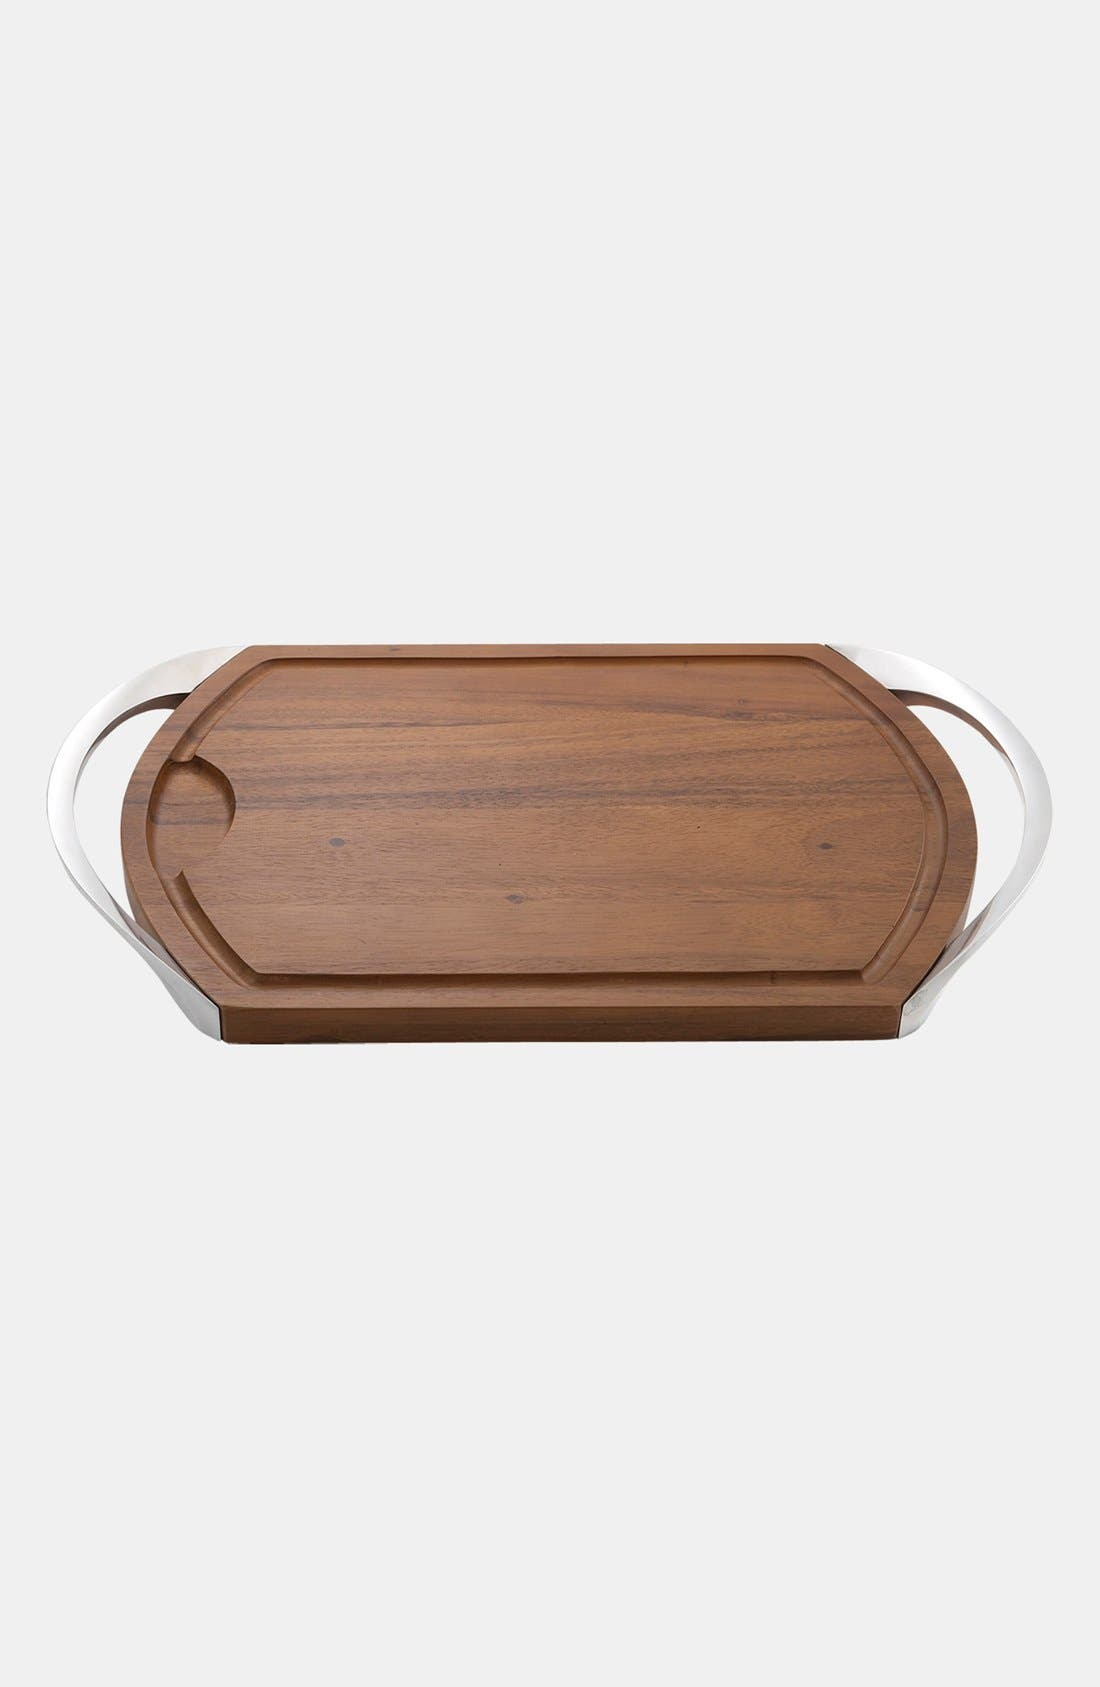 Carve & Serve Cutting Board,                             Main thumbnail 1, color,                             040